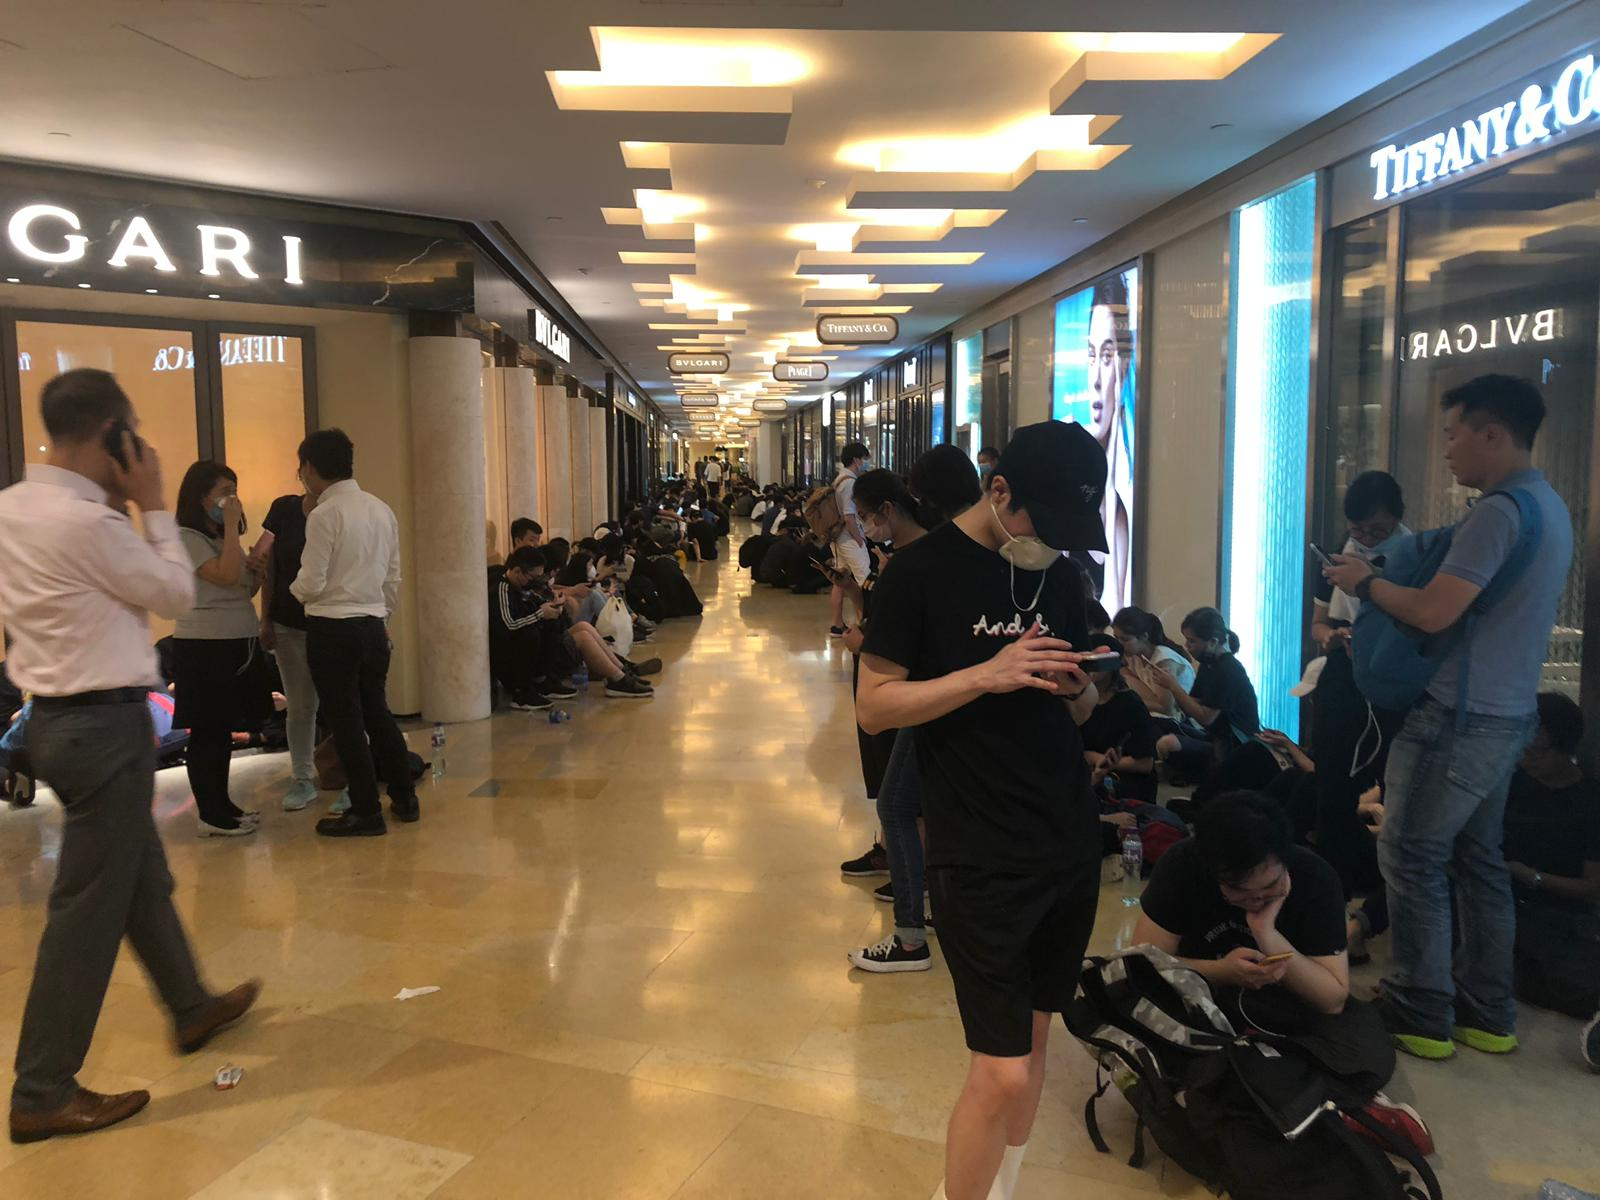 Protesters take shelter outside Tiffany & Co. at Pacific Place mall.